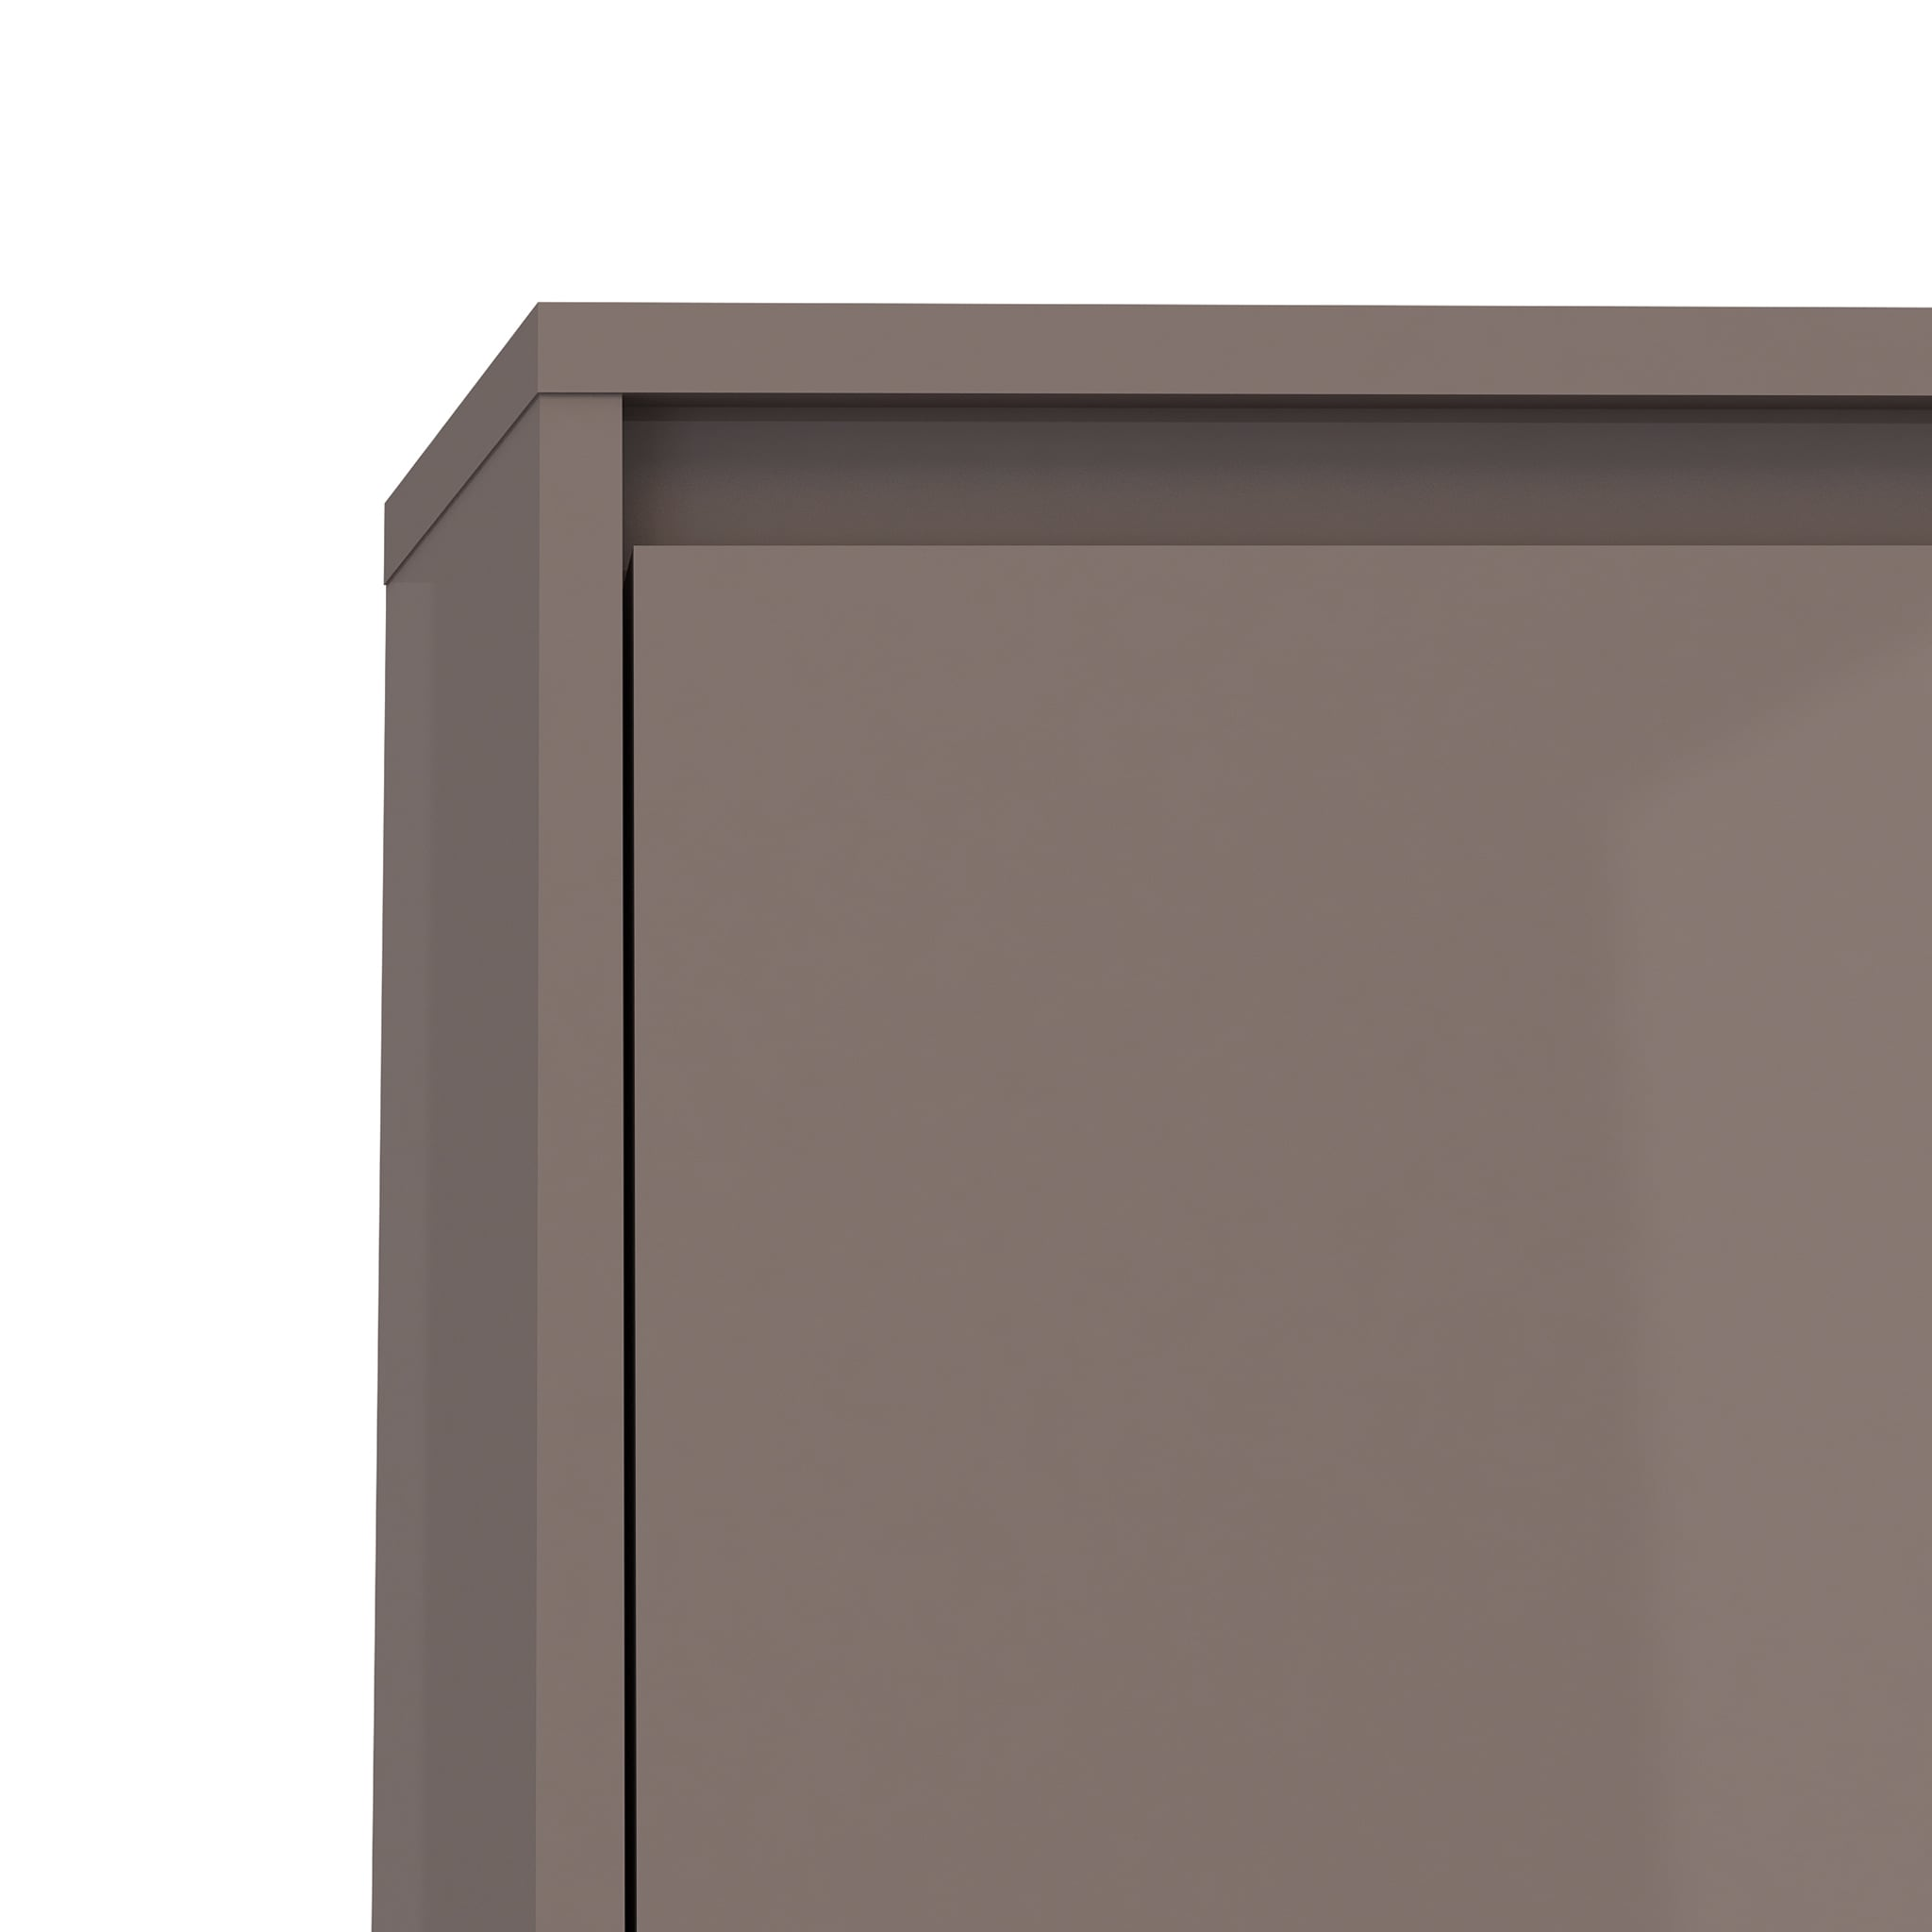 Tvilum Bright White/Espresso MDF 3 Drawer Shoe Cabinet   Free Shipping  Today   Overstock.com   18760566